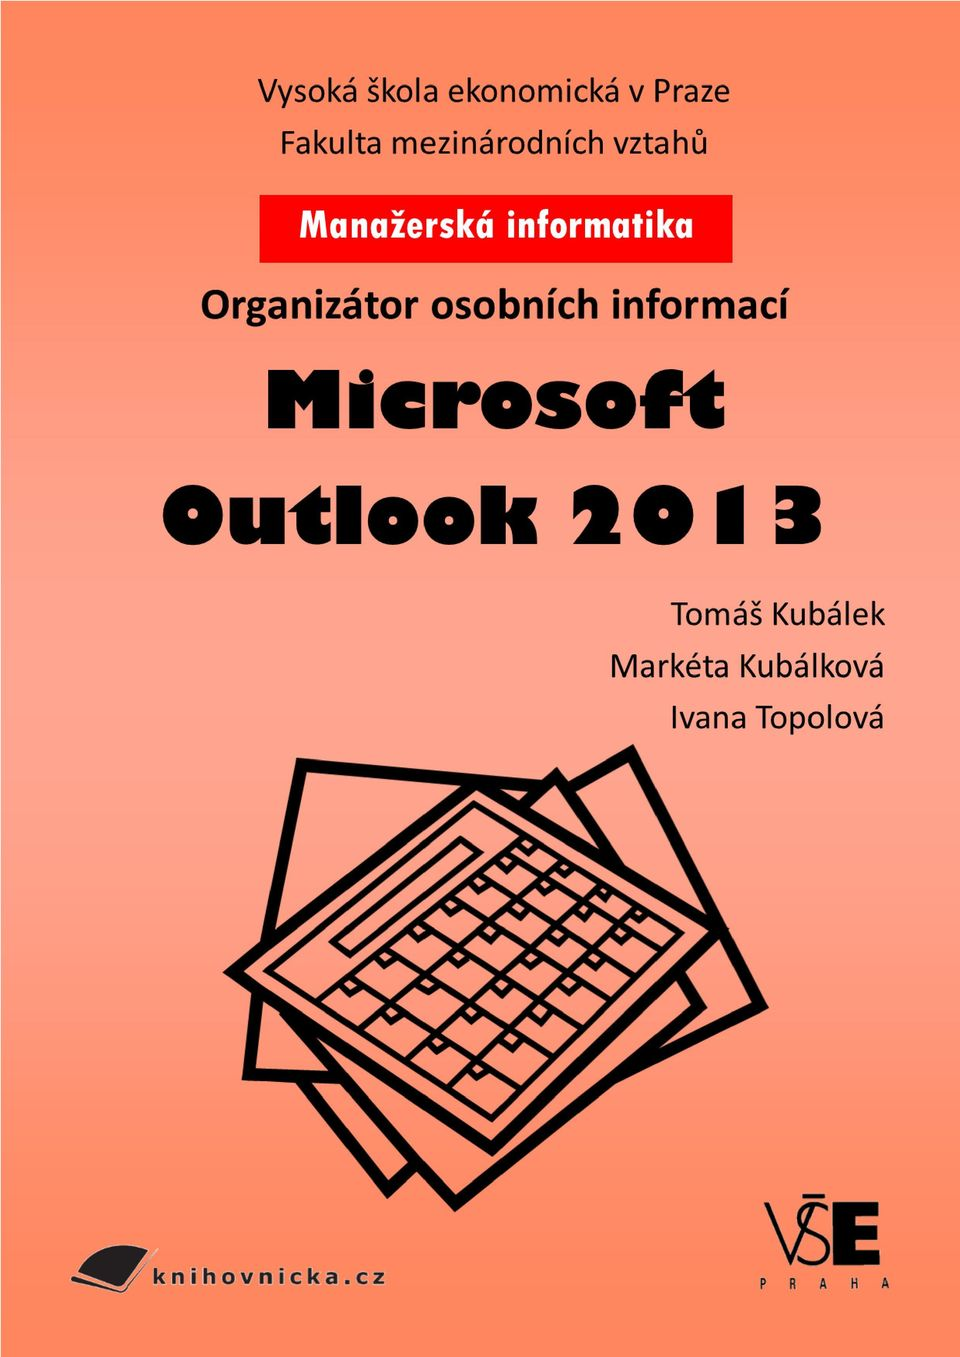 ms outlook 2013 save as pdf